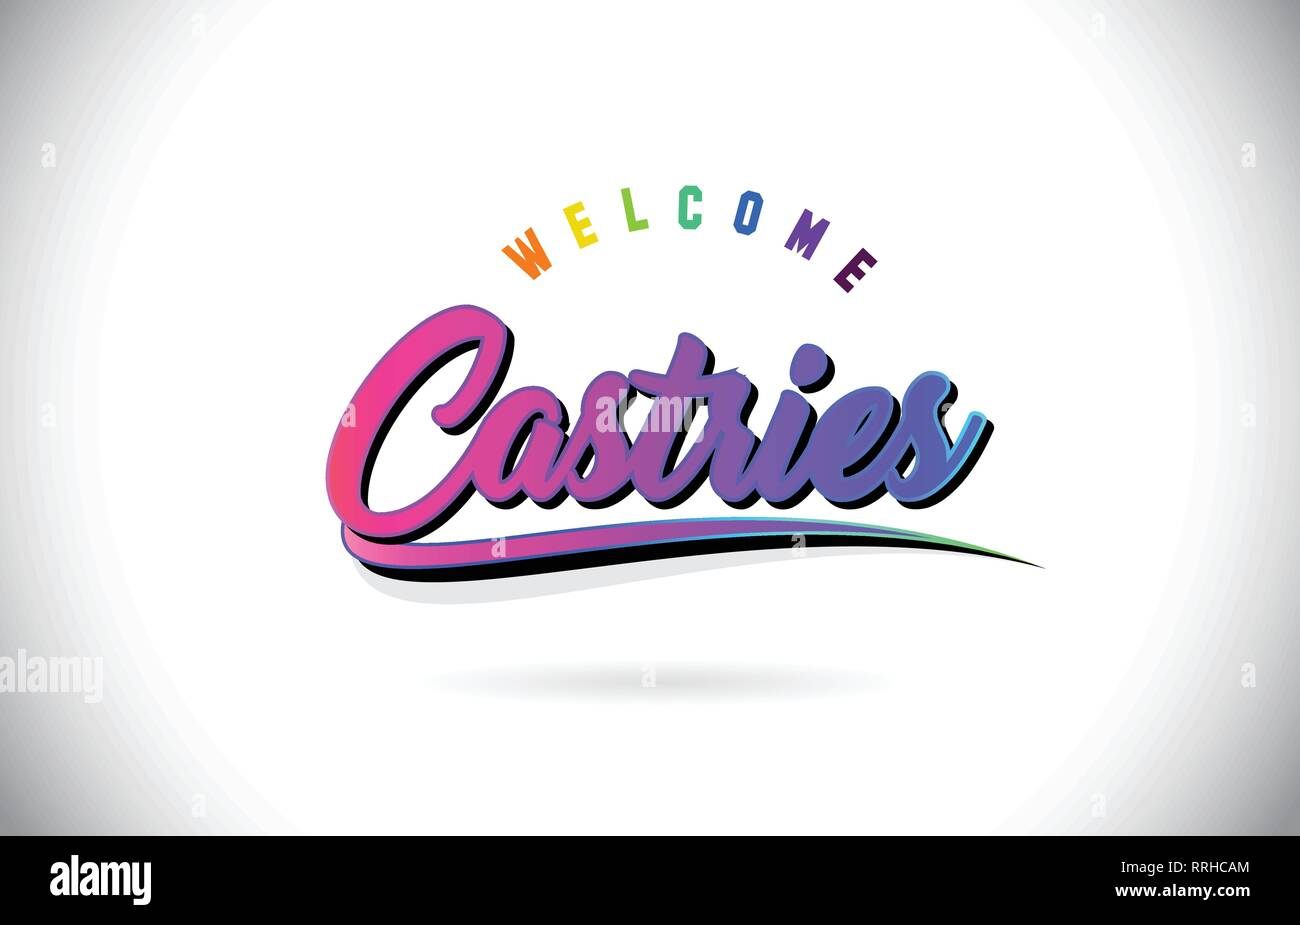 Castries Welcome To Word Text with Creative Purple Pink Handwritten Font and Swoosh Shape Design Vector Illustration. - Stock Image